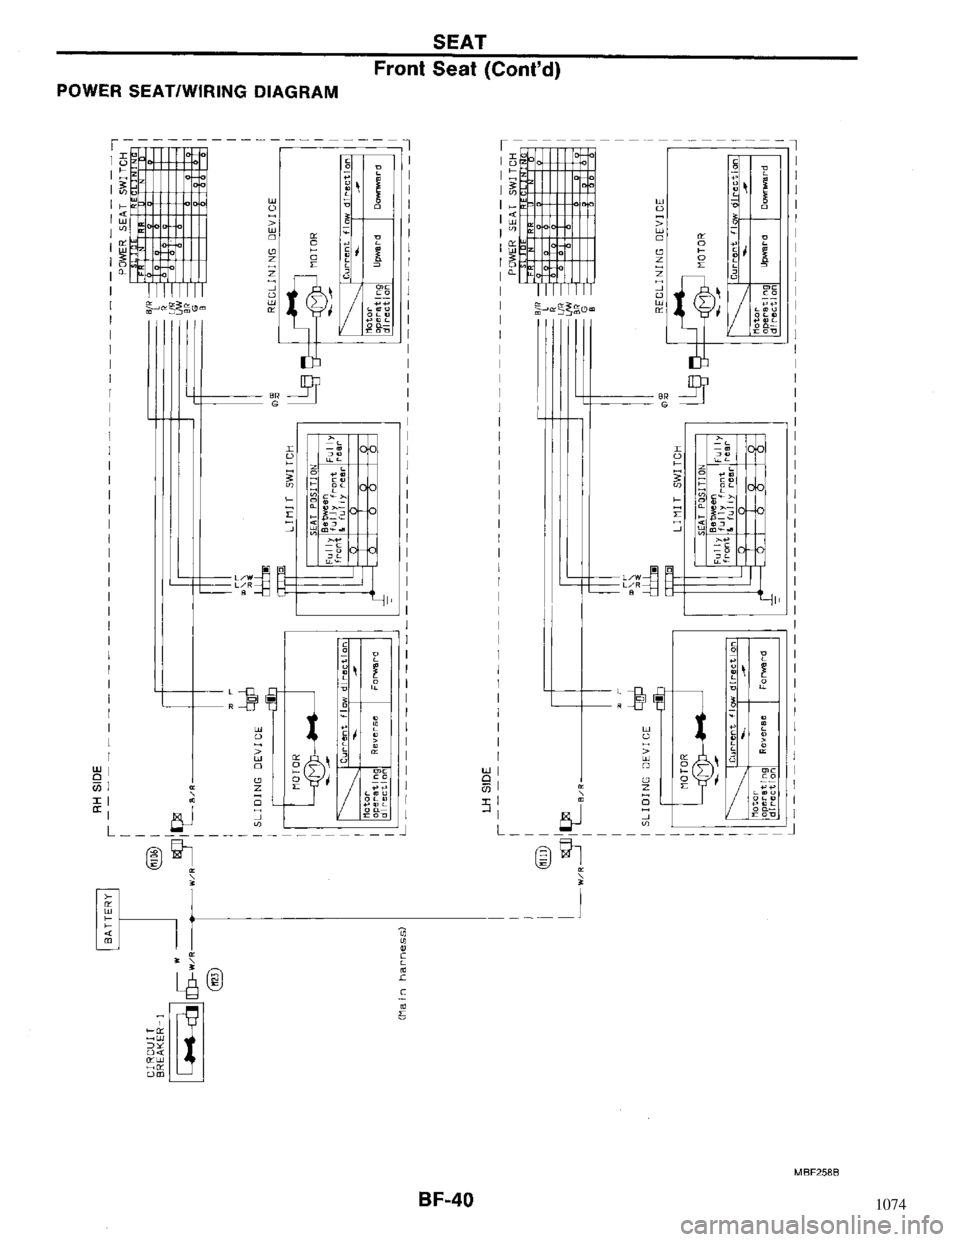 NISSAN MAXIMA 1994 A32 / 4.G Body Workshop Manual, Page 40